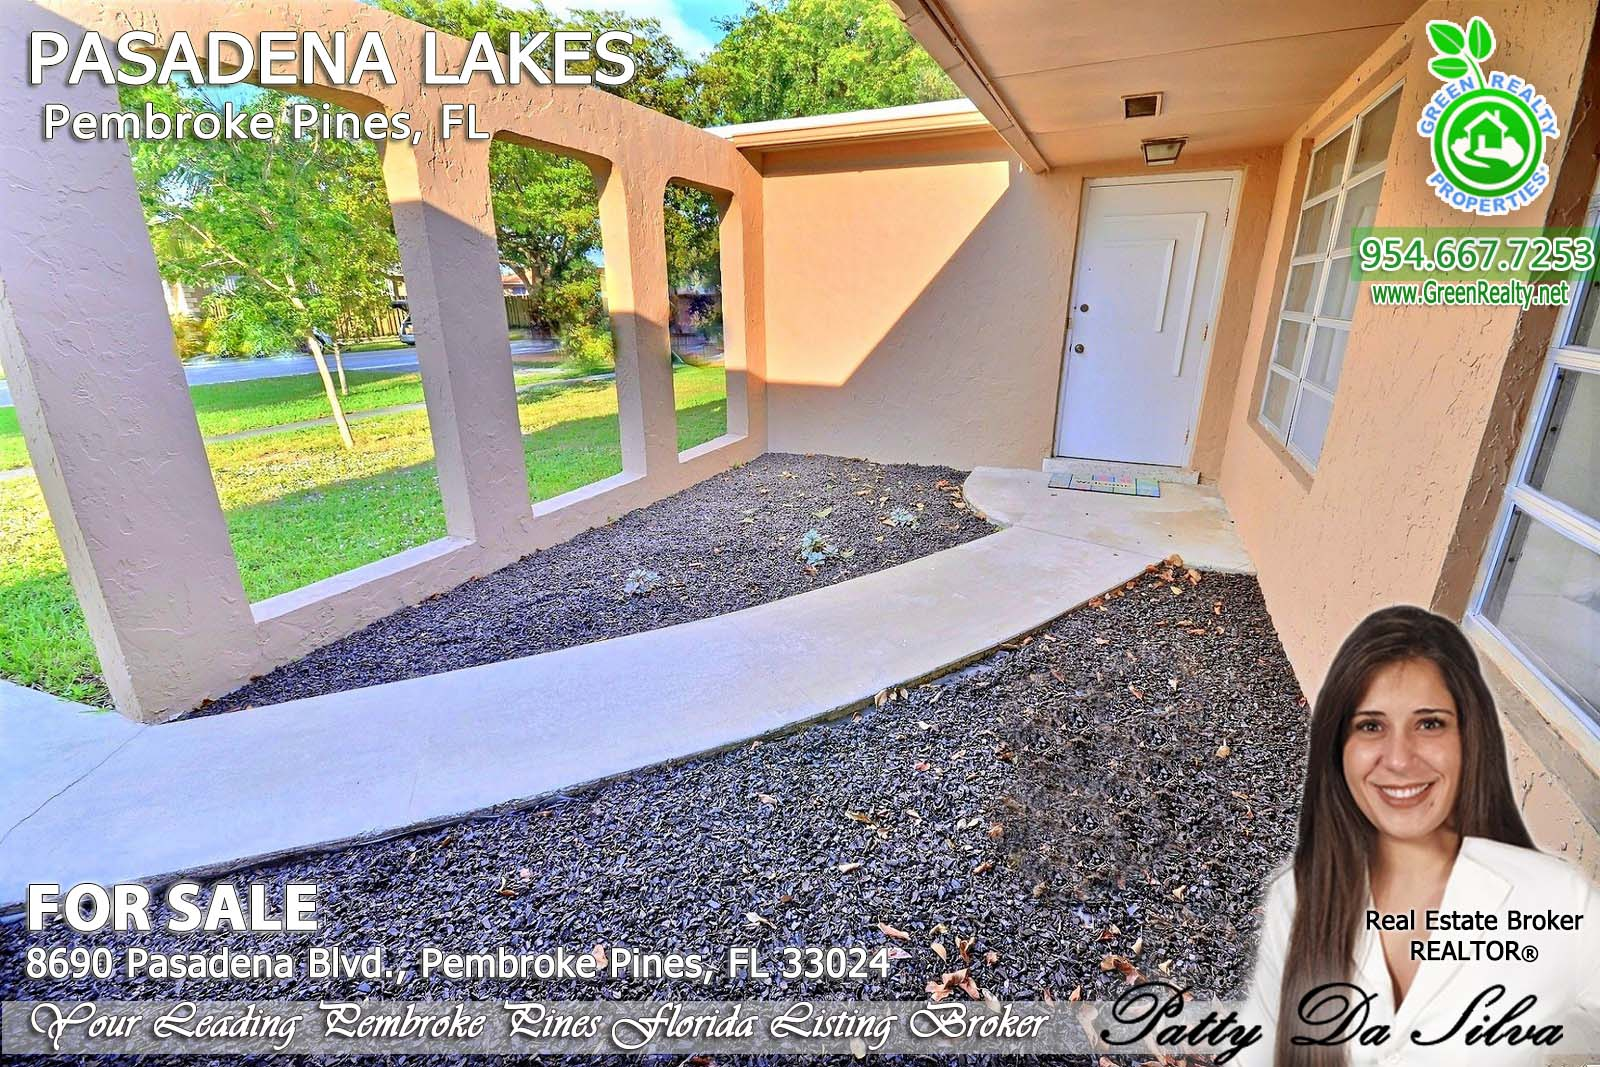 Pasadena Lakes Real Estate Patty Da Silva (1)